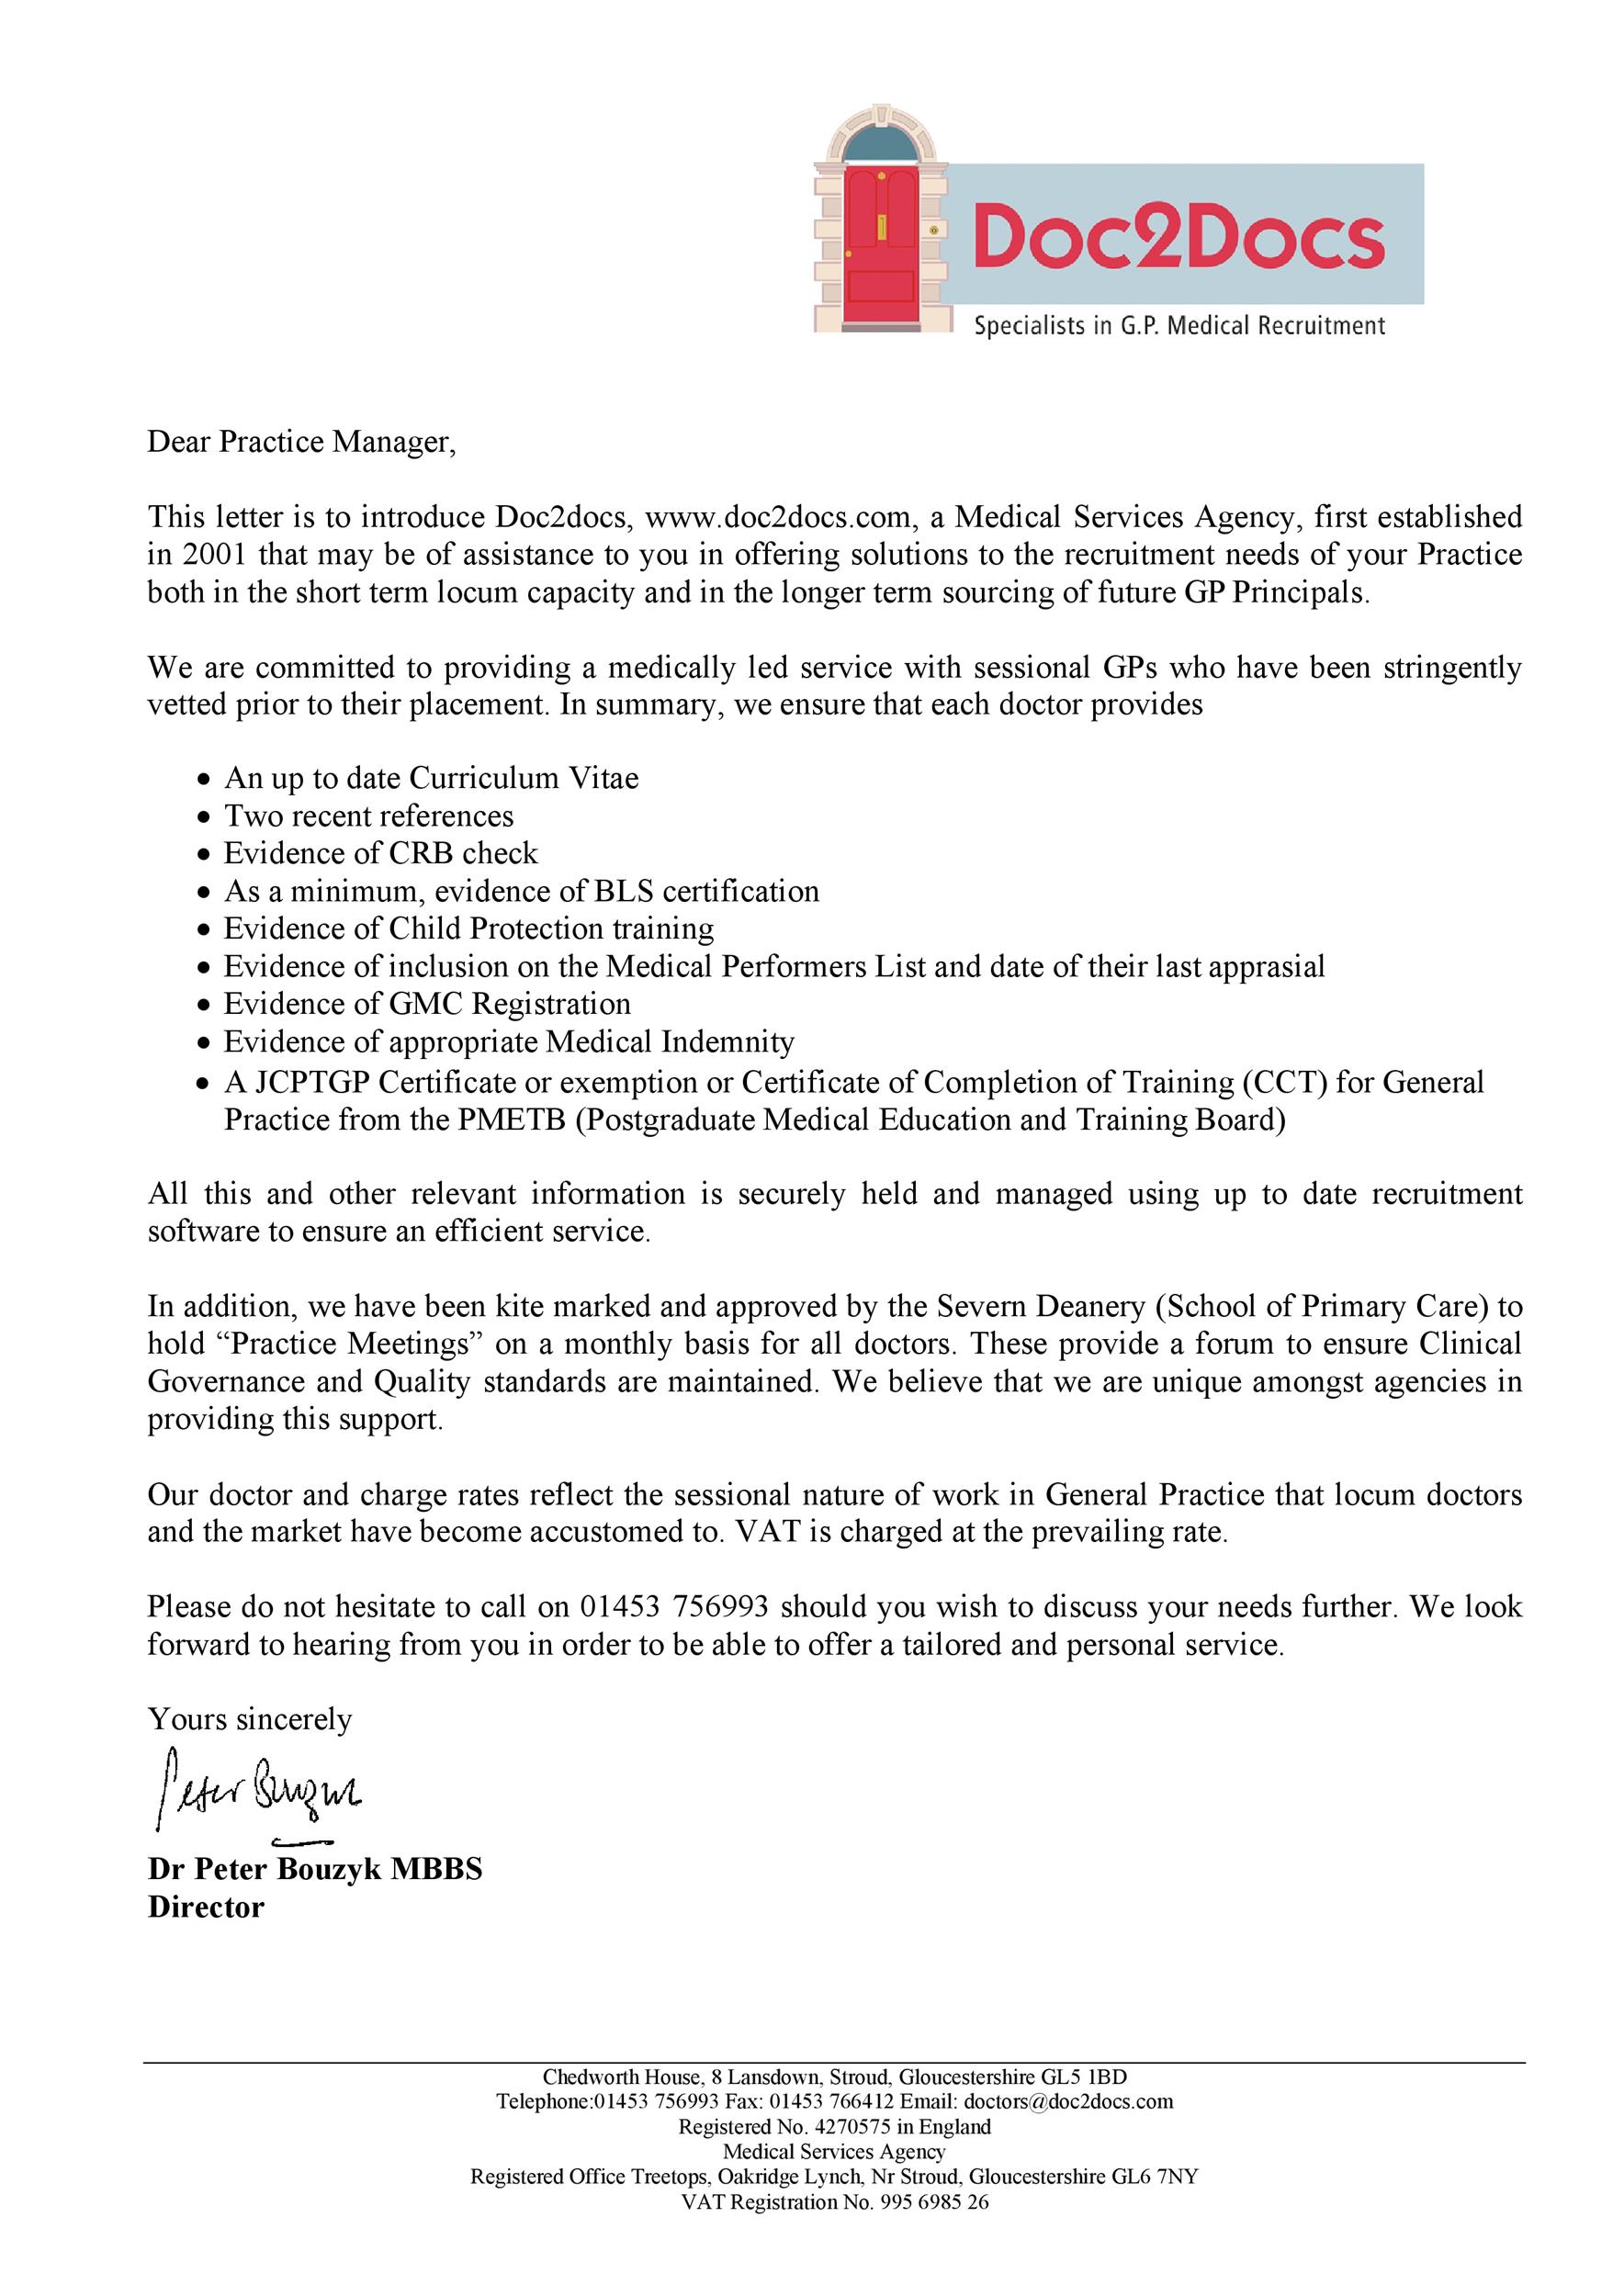 Free business introduction letter 27